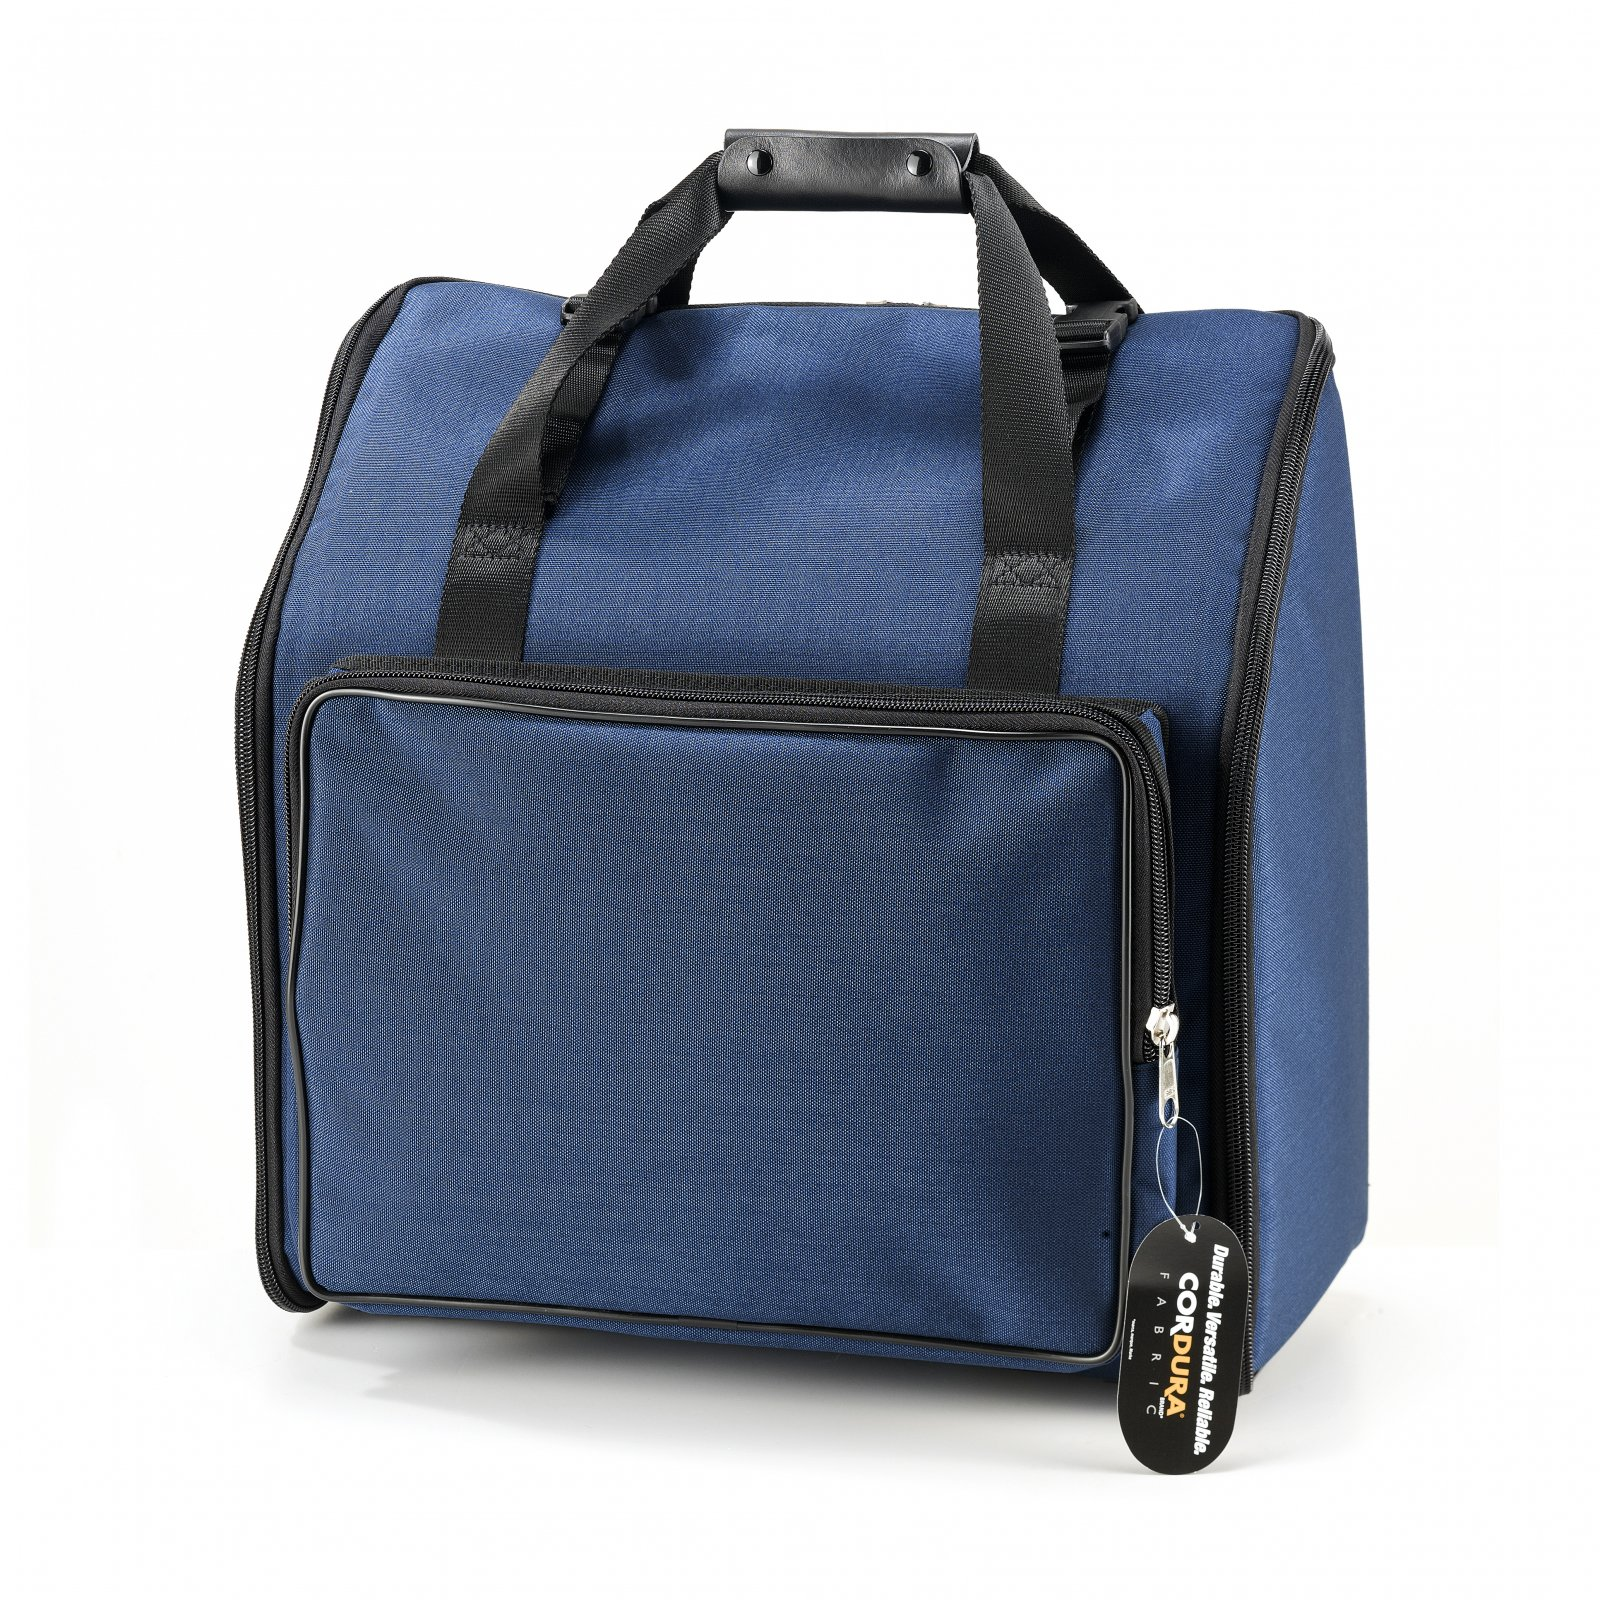 NEW Blue Fuselli Gig Bag for Accordion 14 x 14 x 8